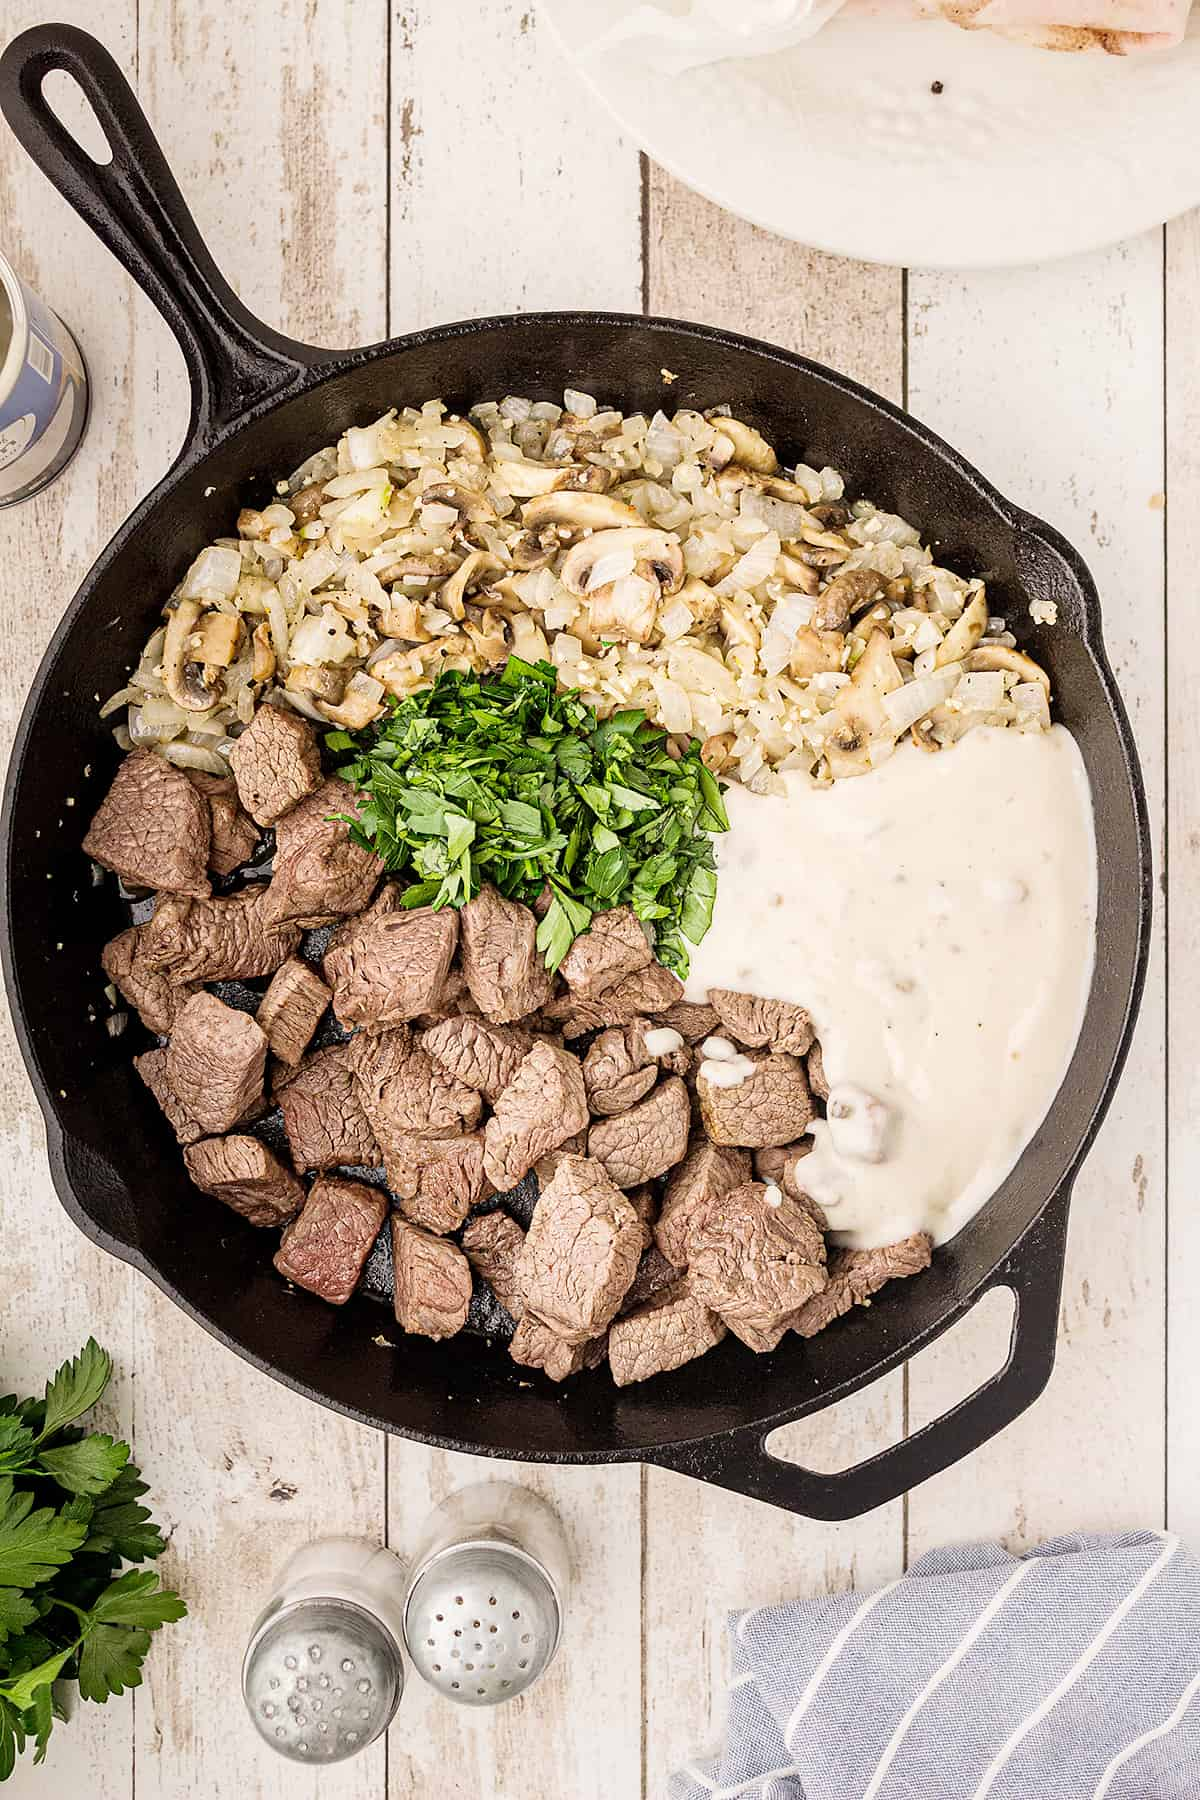 Cooked beef, vegetables, soup, and parsley added to cast iron skillet